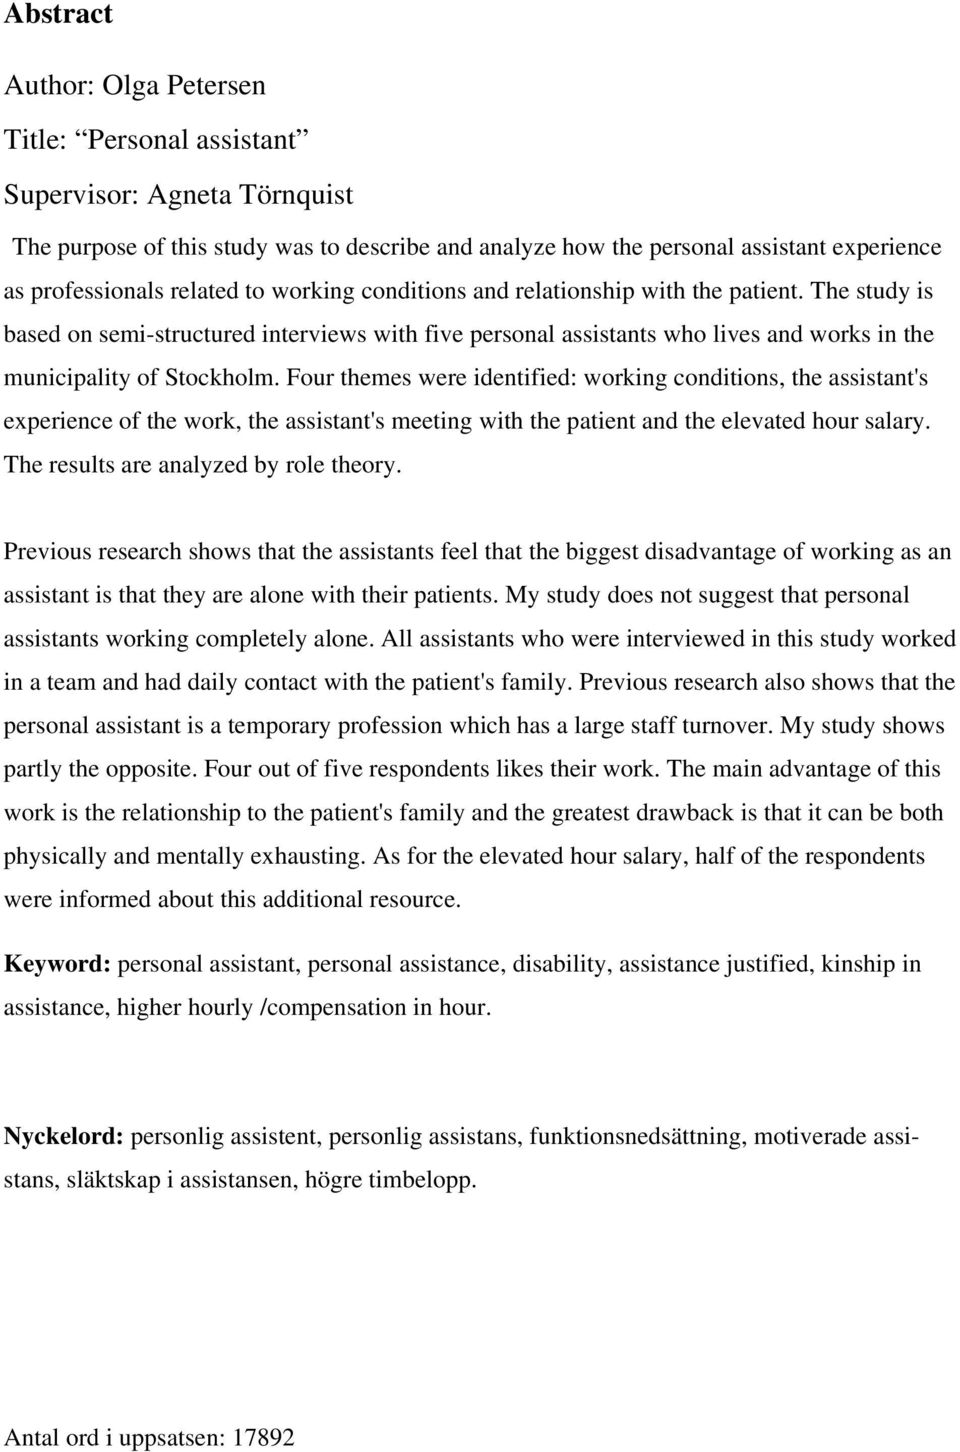 Four themes were identified: working conditions, the assistant's experience of the work, the assistant's meeting with the patient and the elevated hour salary. The results are analyzed by role theory.